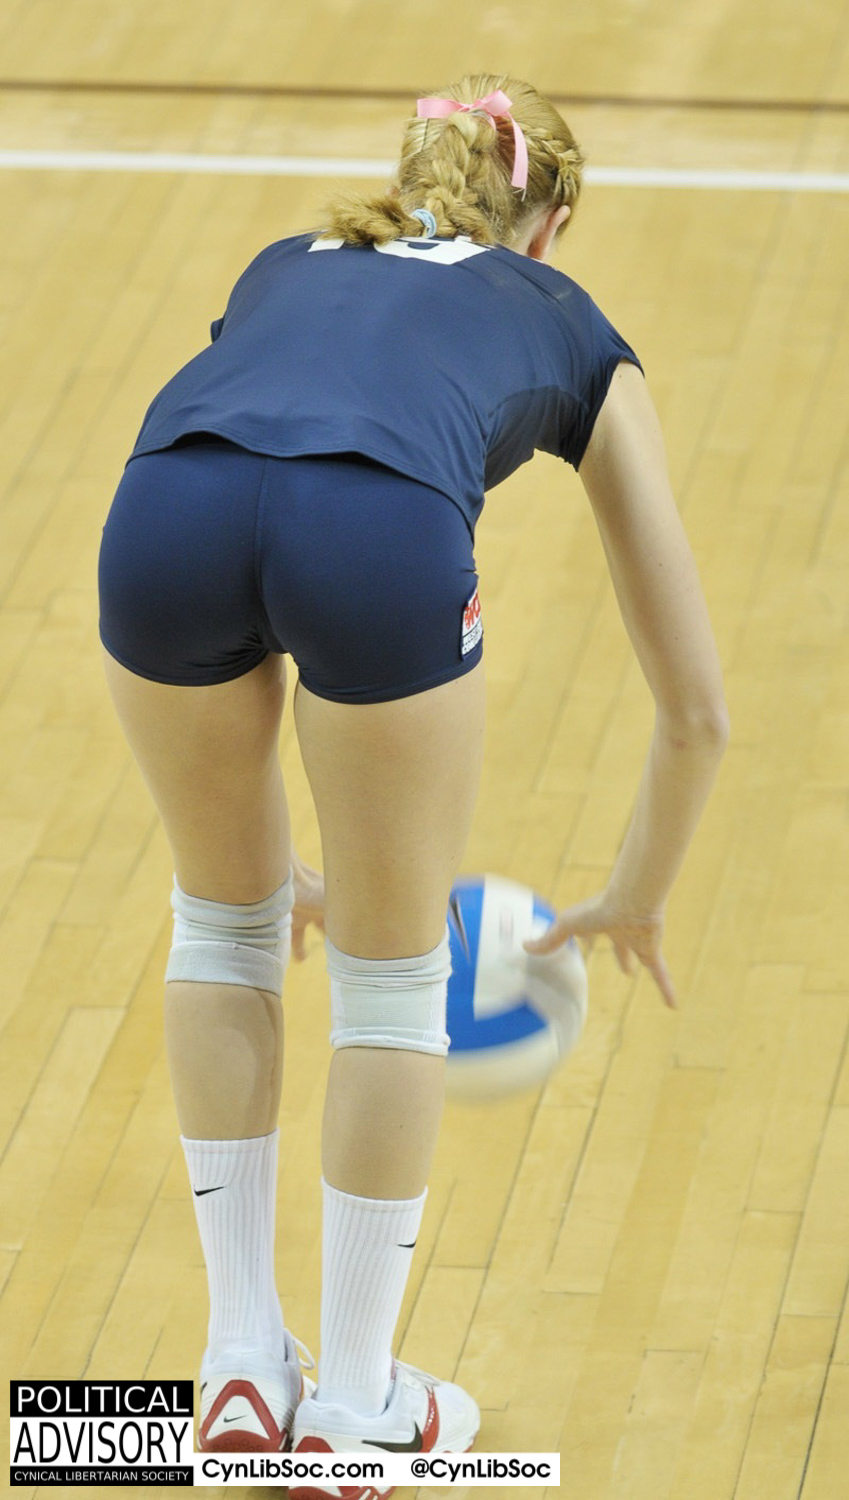 Ya know what I think about? Volleyball chycks.